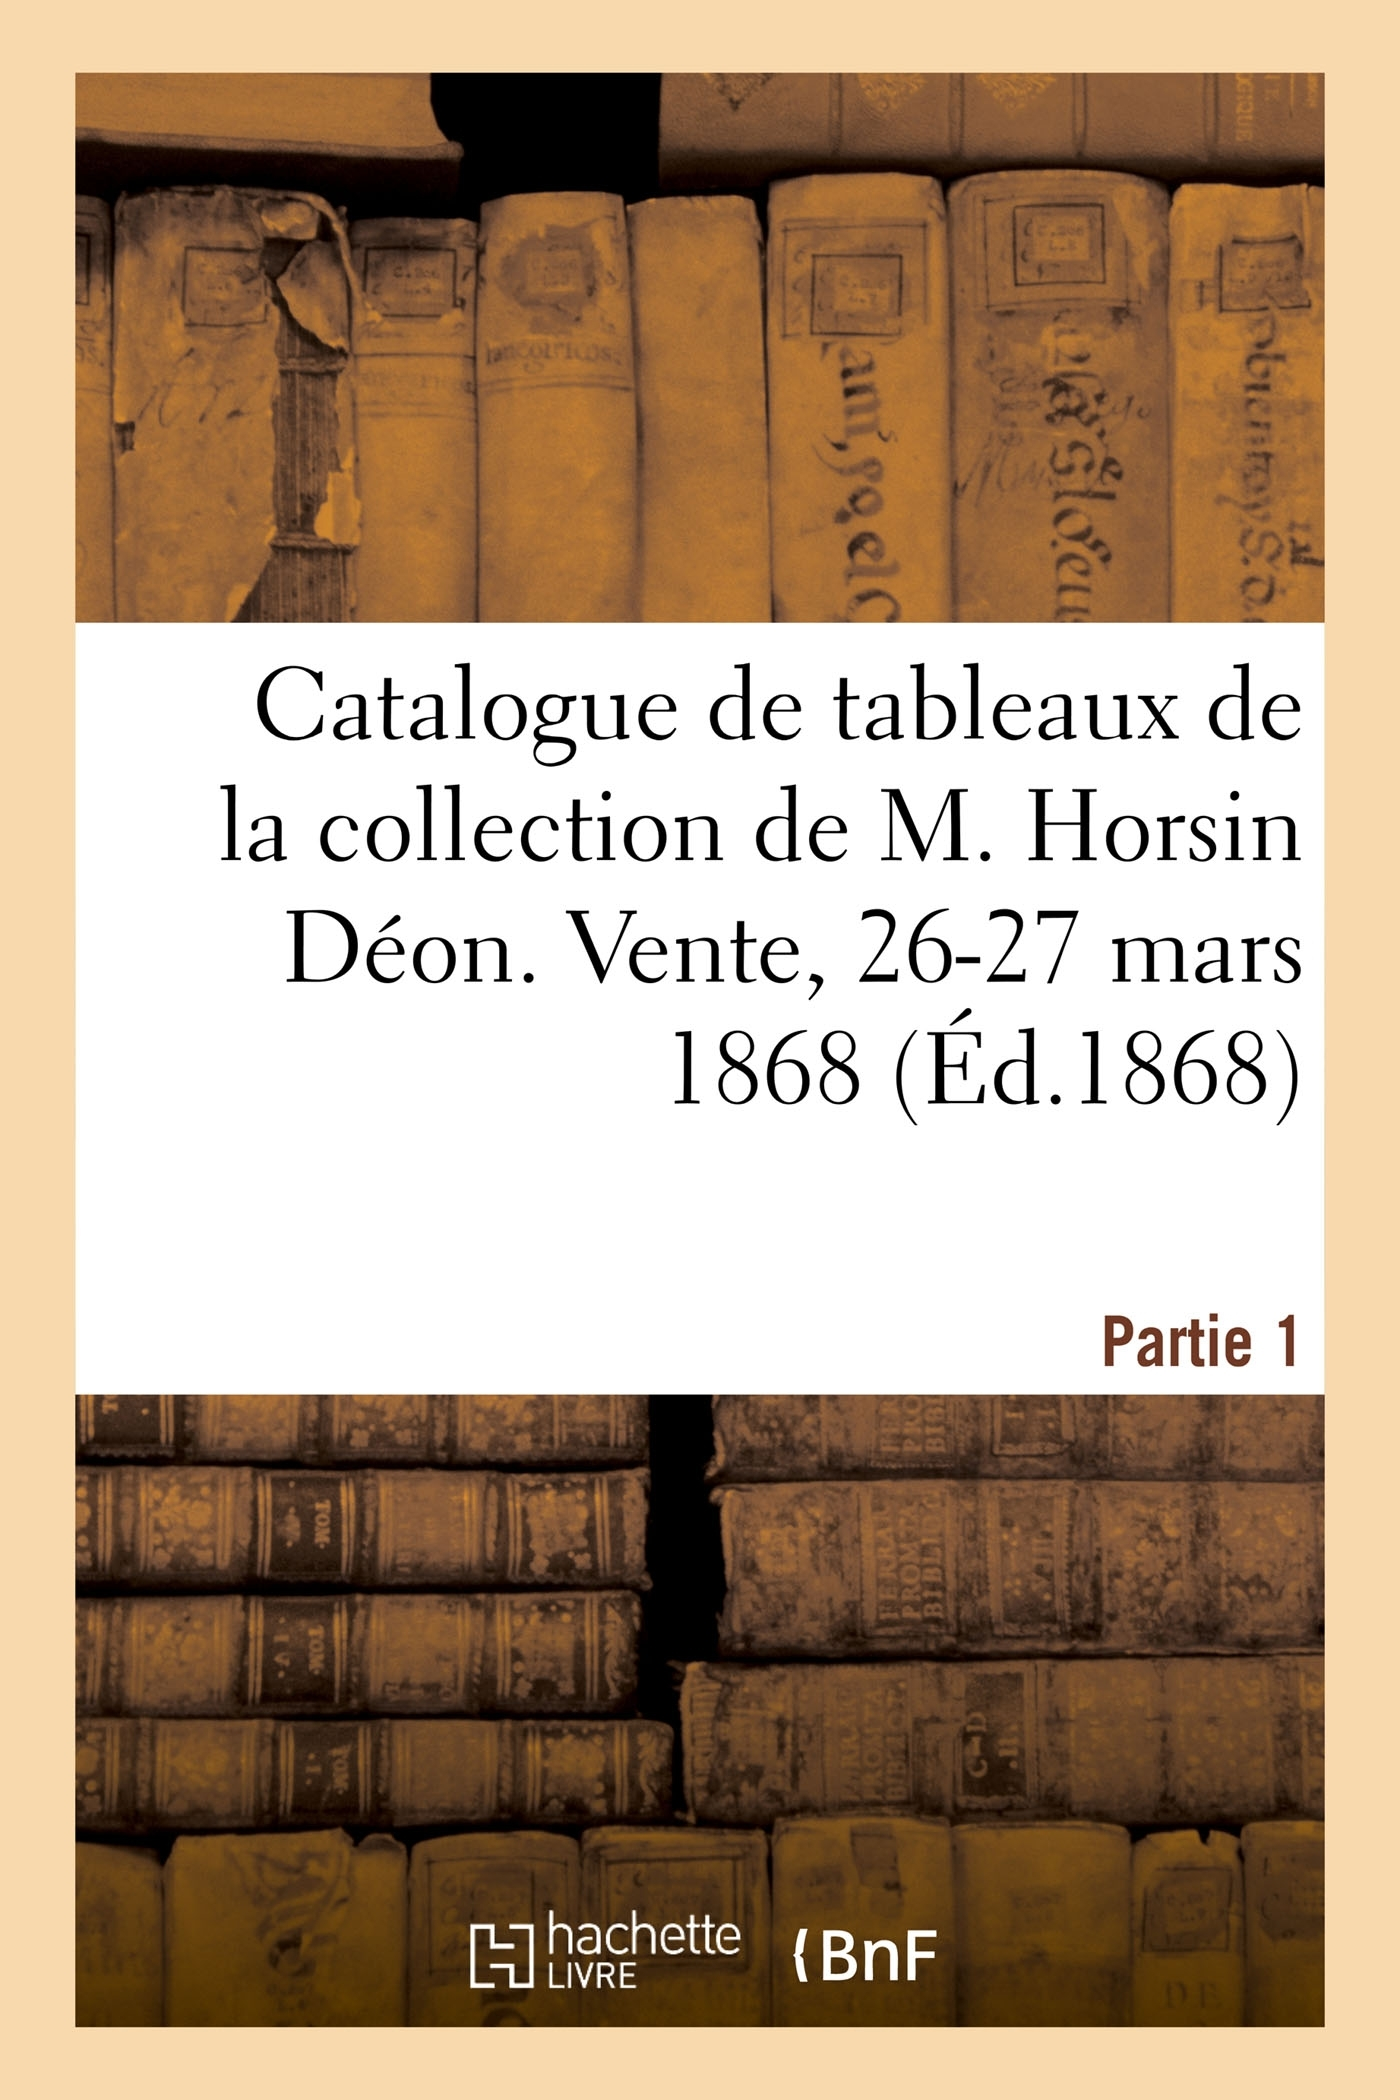 CATALOGUE DE TABLEAUX ANCIENS DES DIFFERENTES ECOLES DE LA COLLECTION DE M. HORSIN DEON - VENTE, 26-